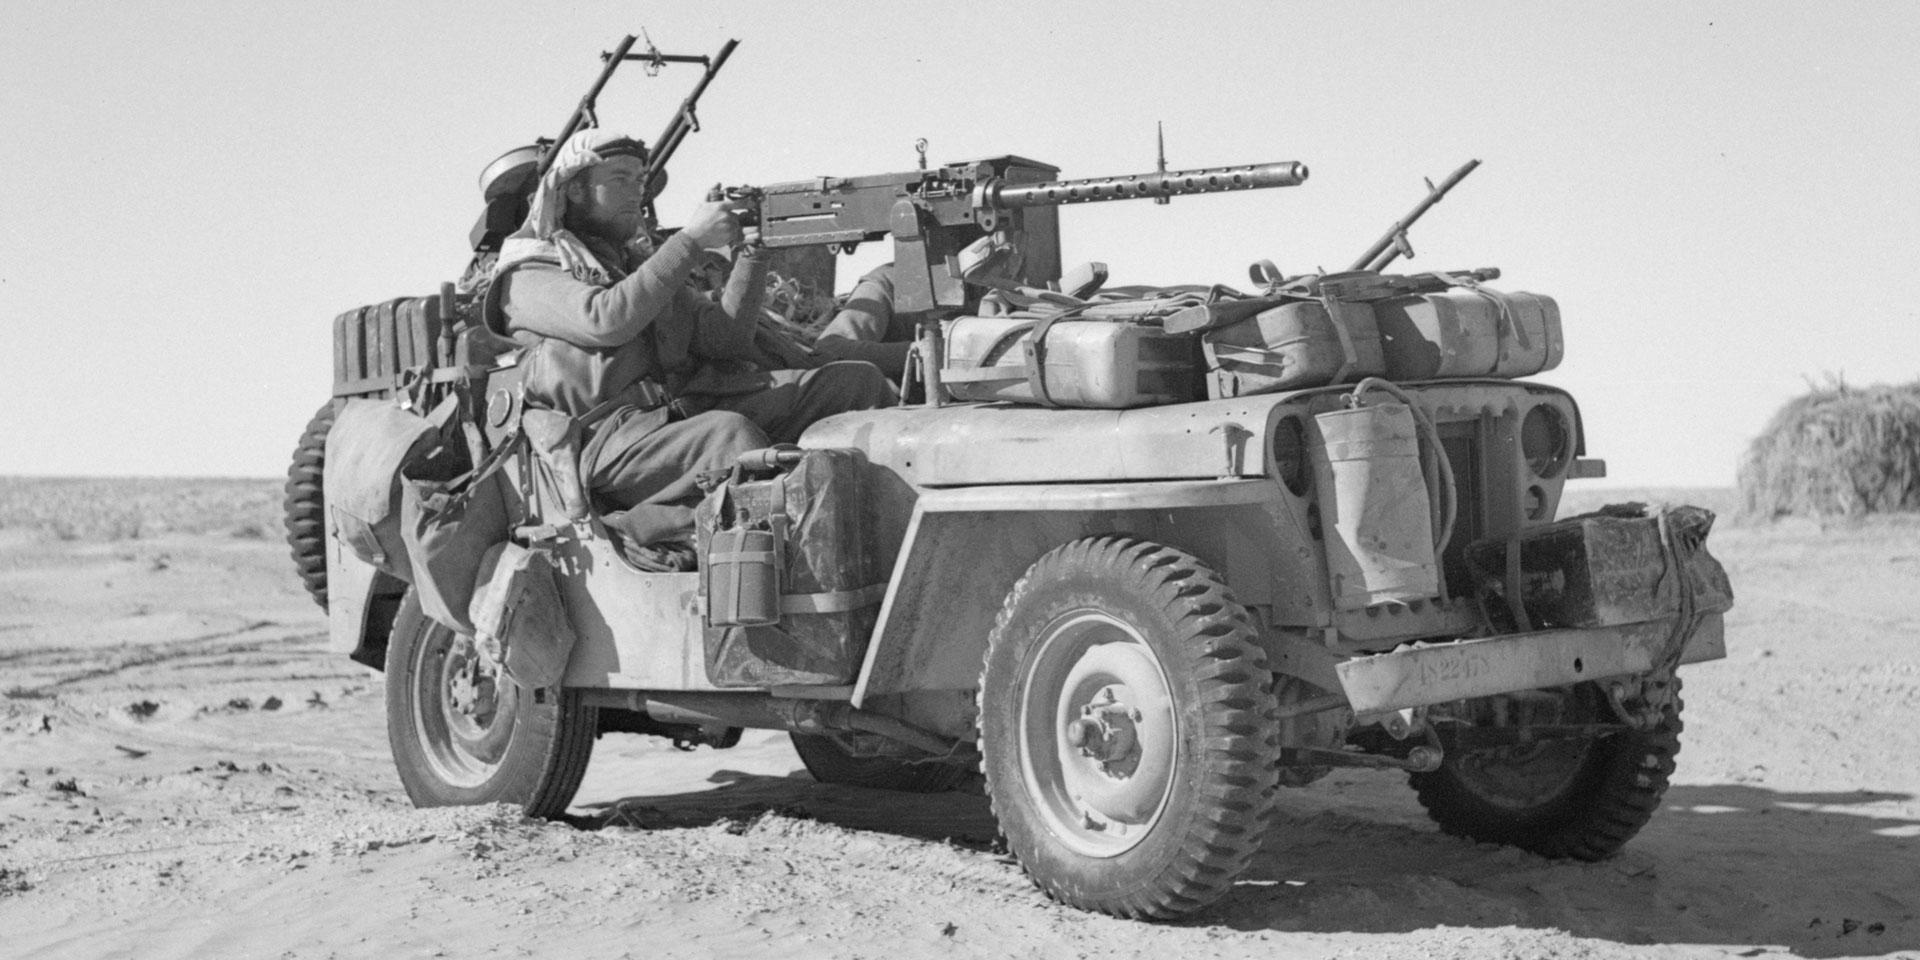 A heavily armed SAS jeep in the desert, c1943